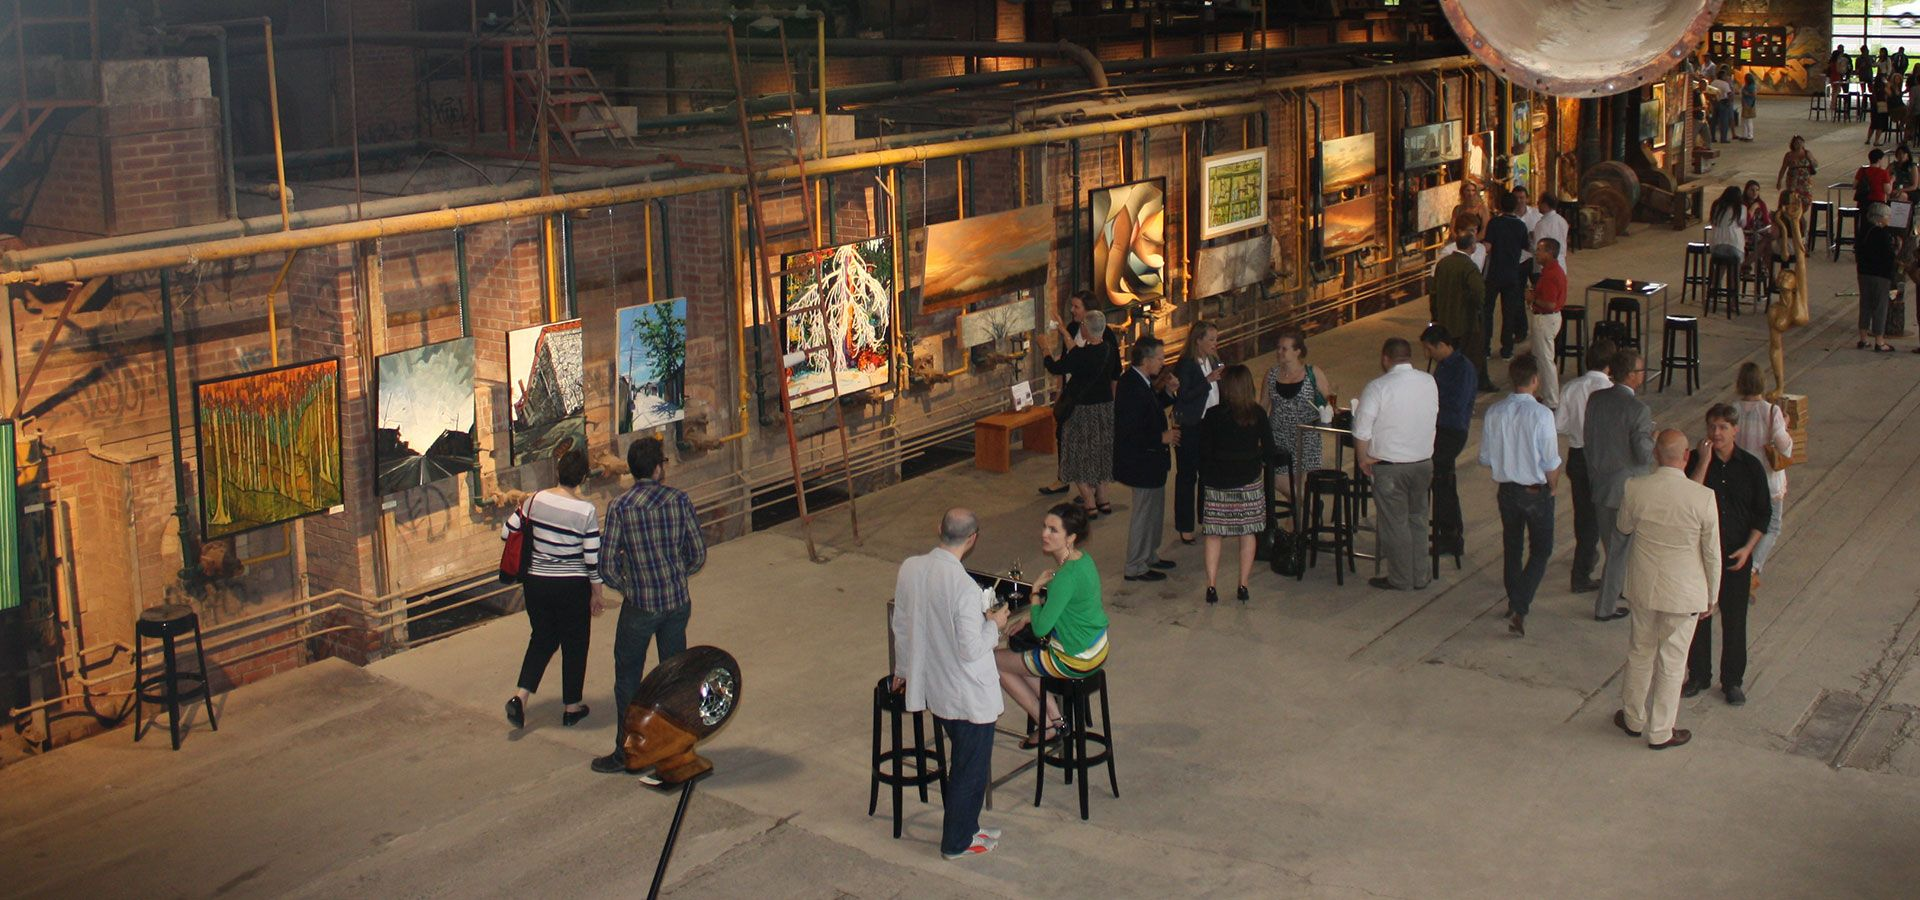 People at an art show in the Kiln Building at Evergreen Brick Works.